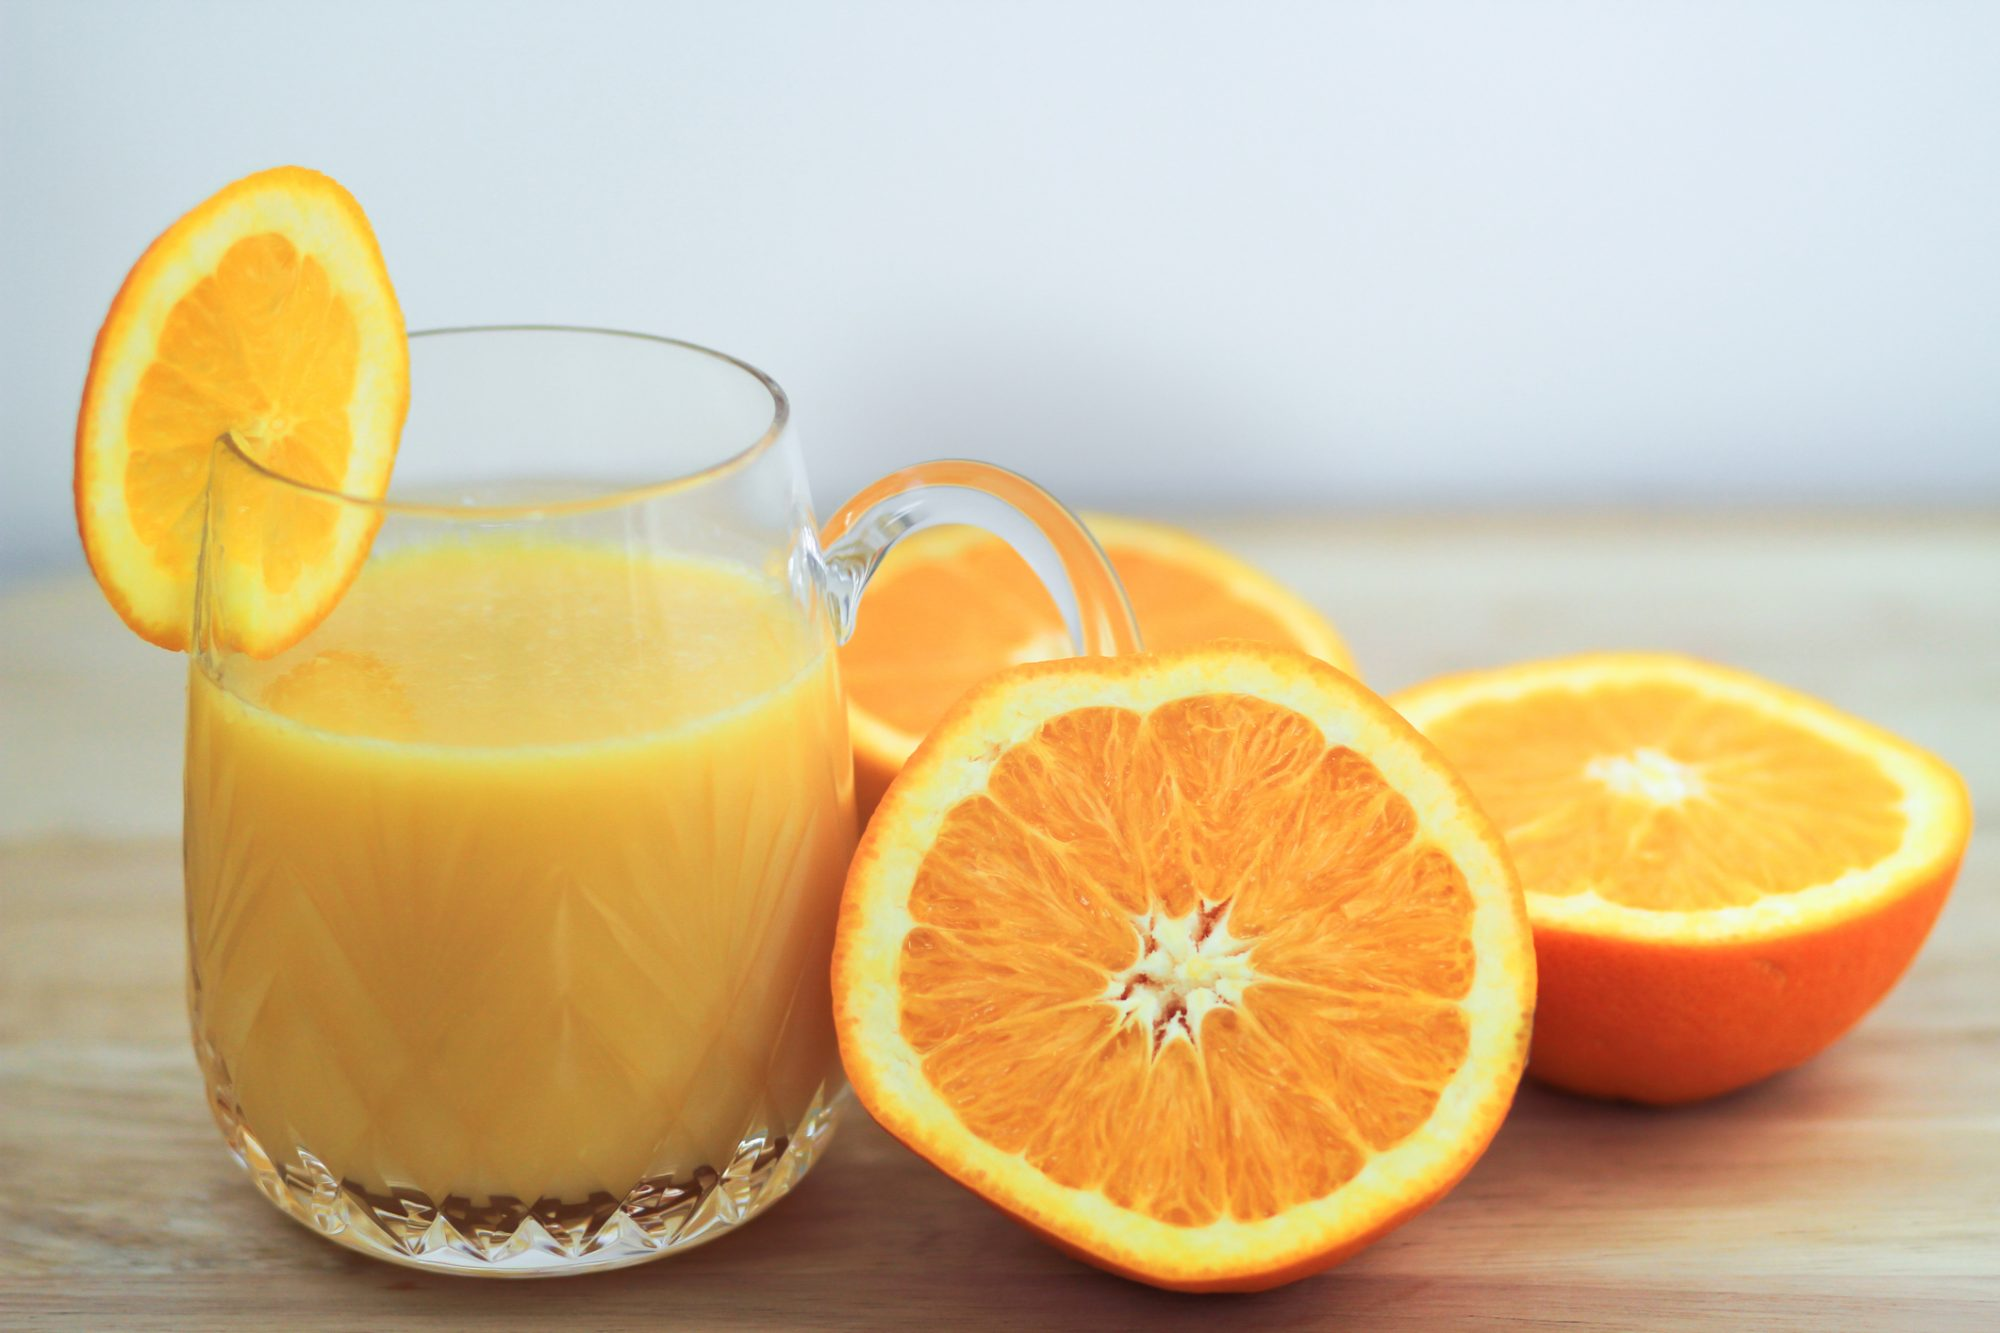 Orange juice & oranges